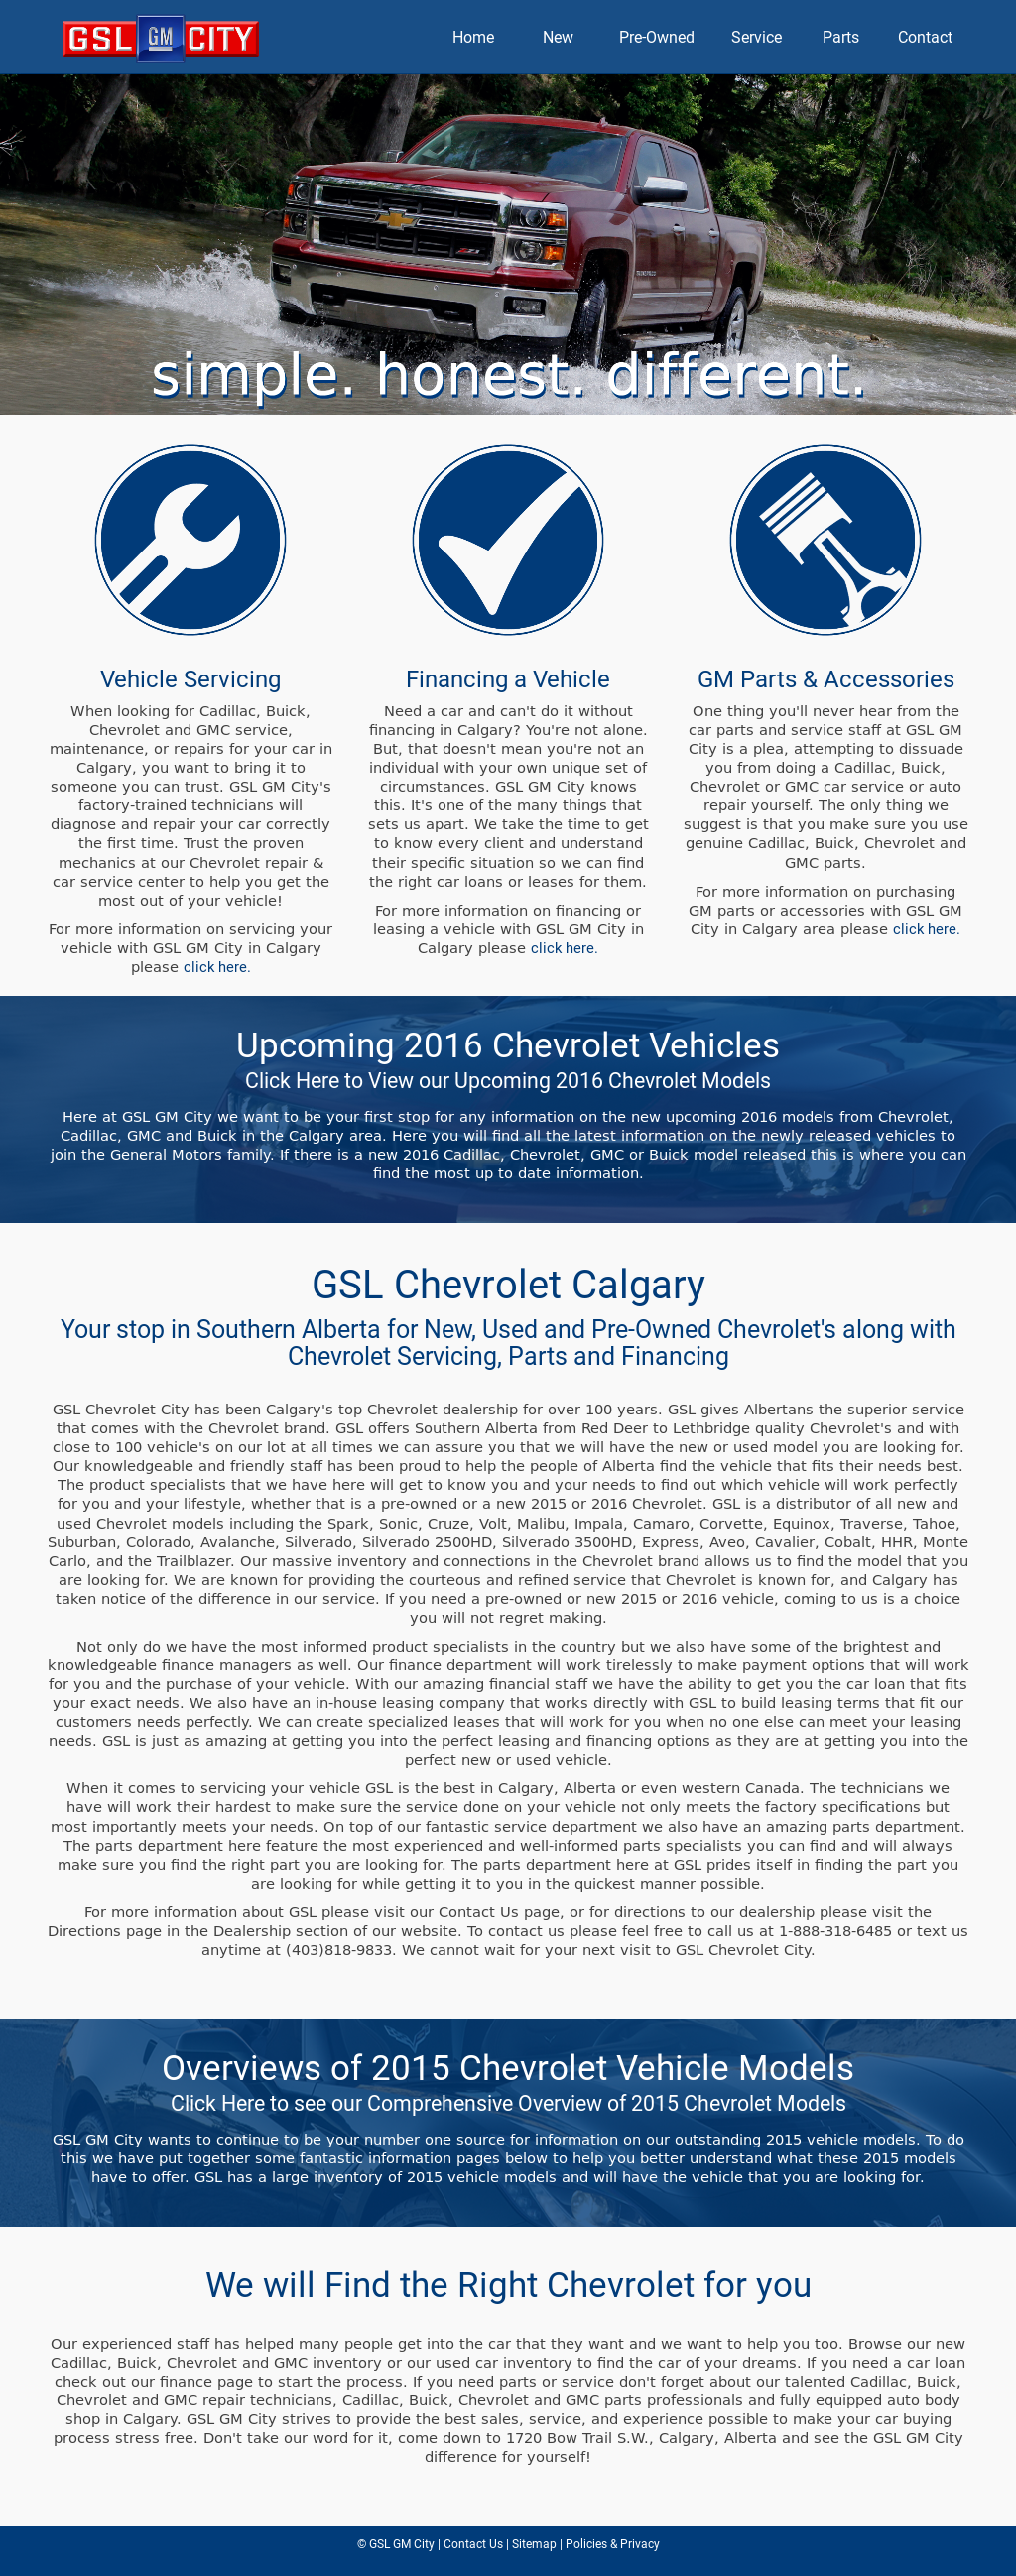 Calgarychevrolet Competitors, Revenue and Employees - Owler